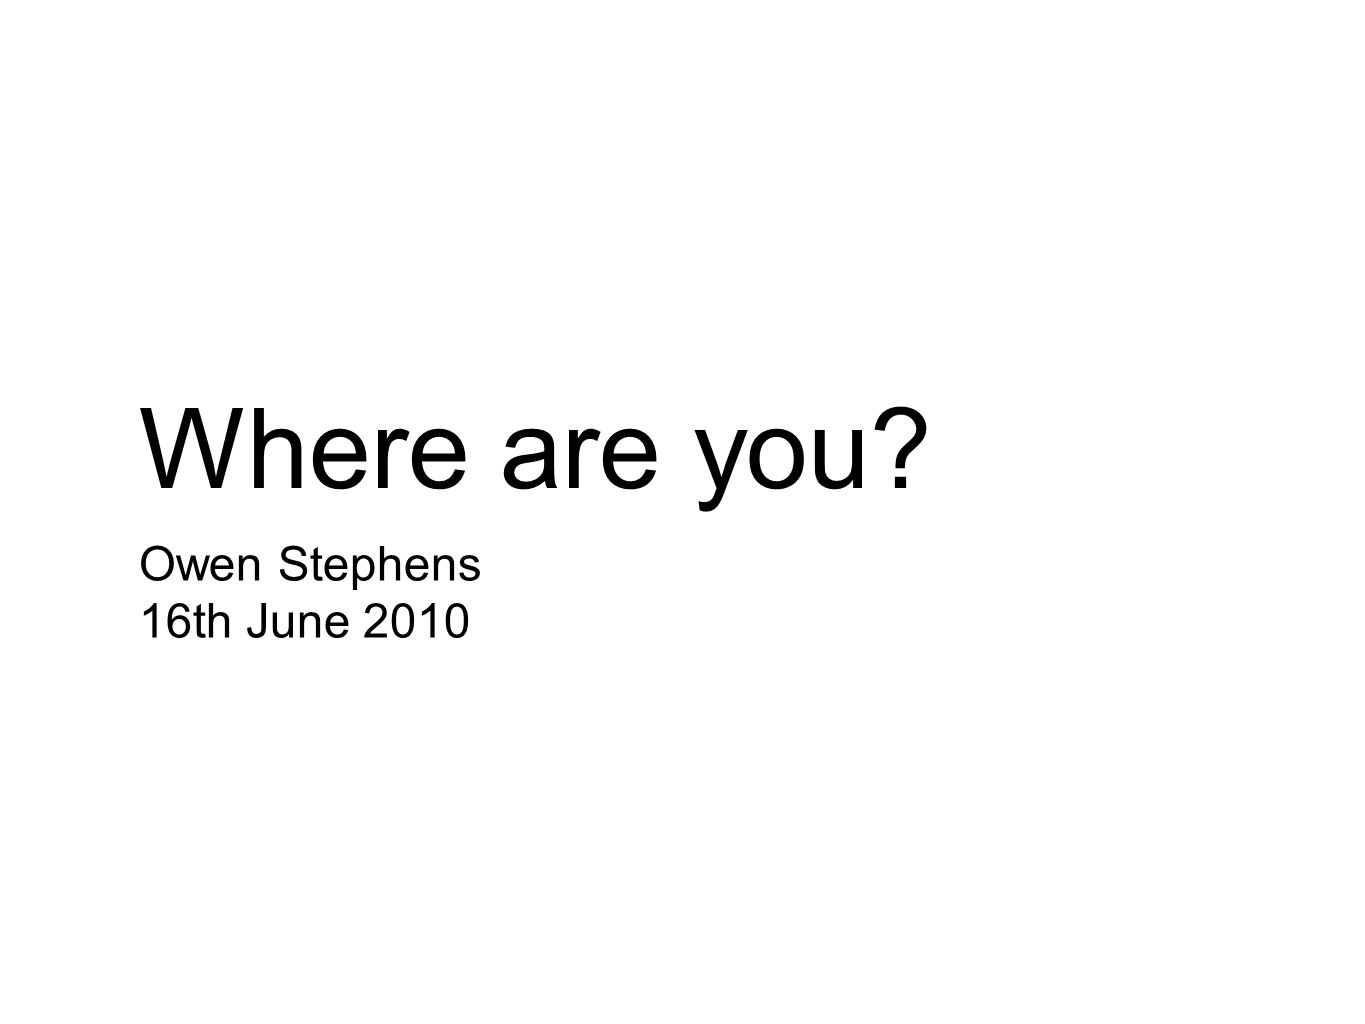 Where are you? Owen Stephens 16th June 2010